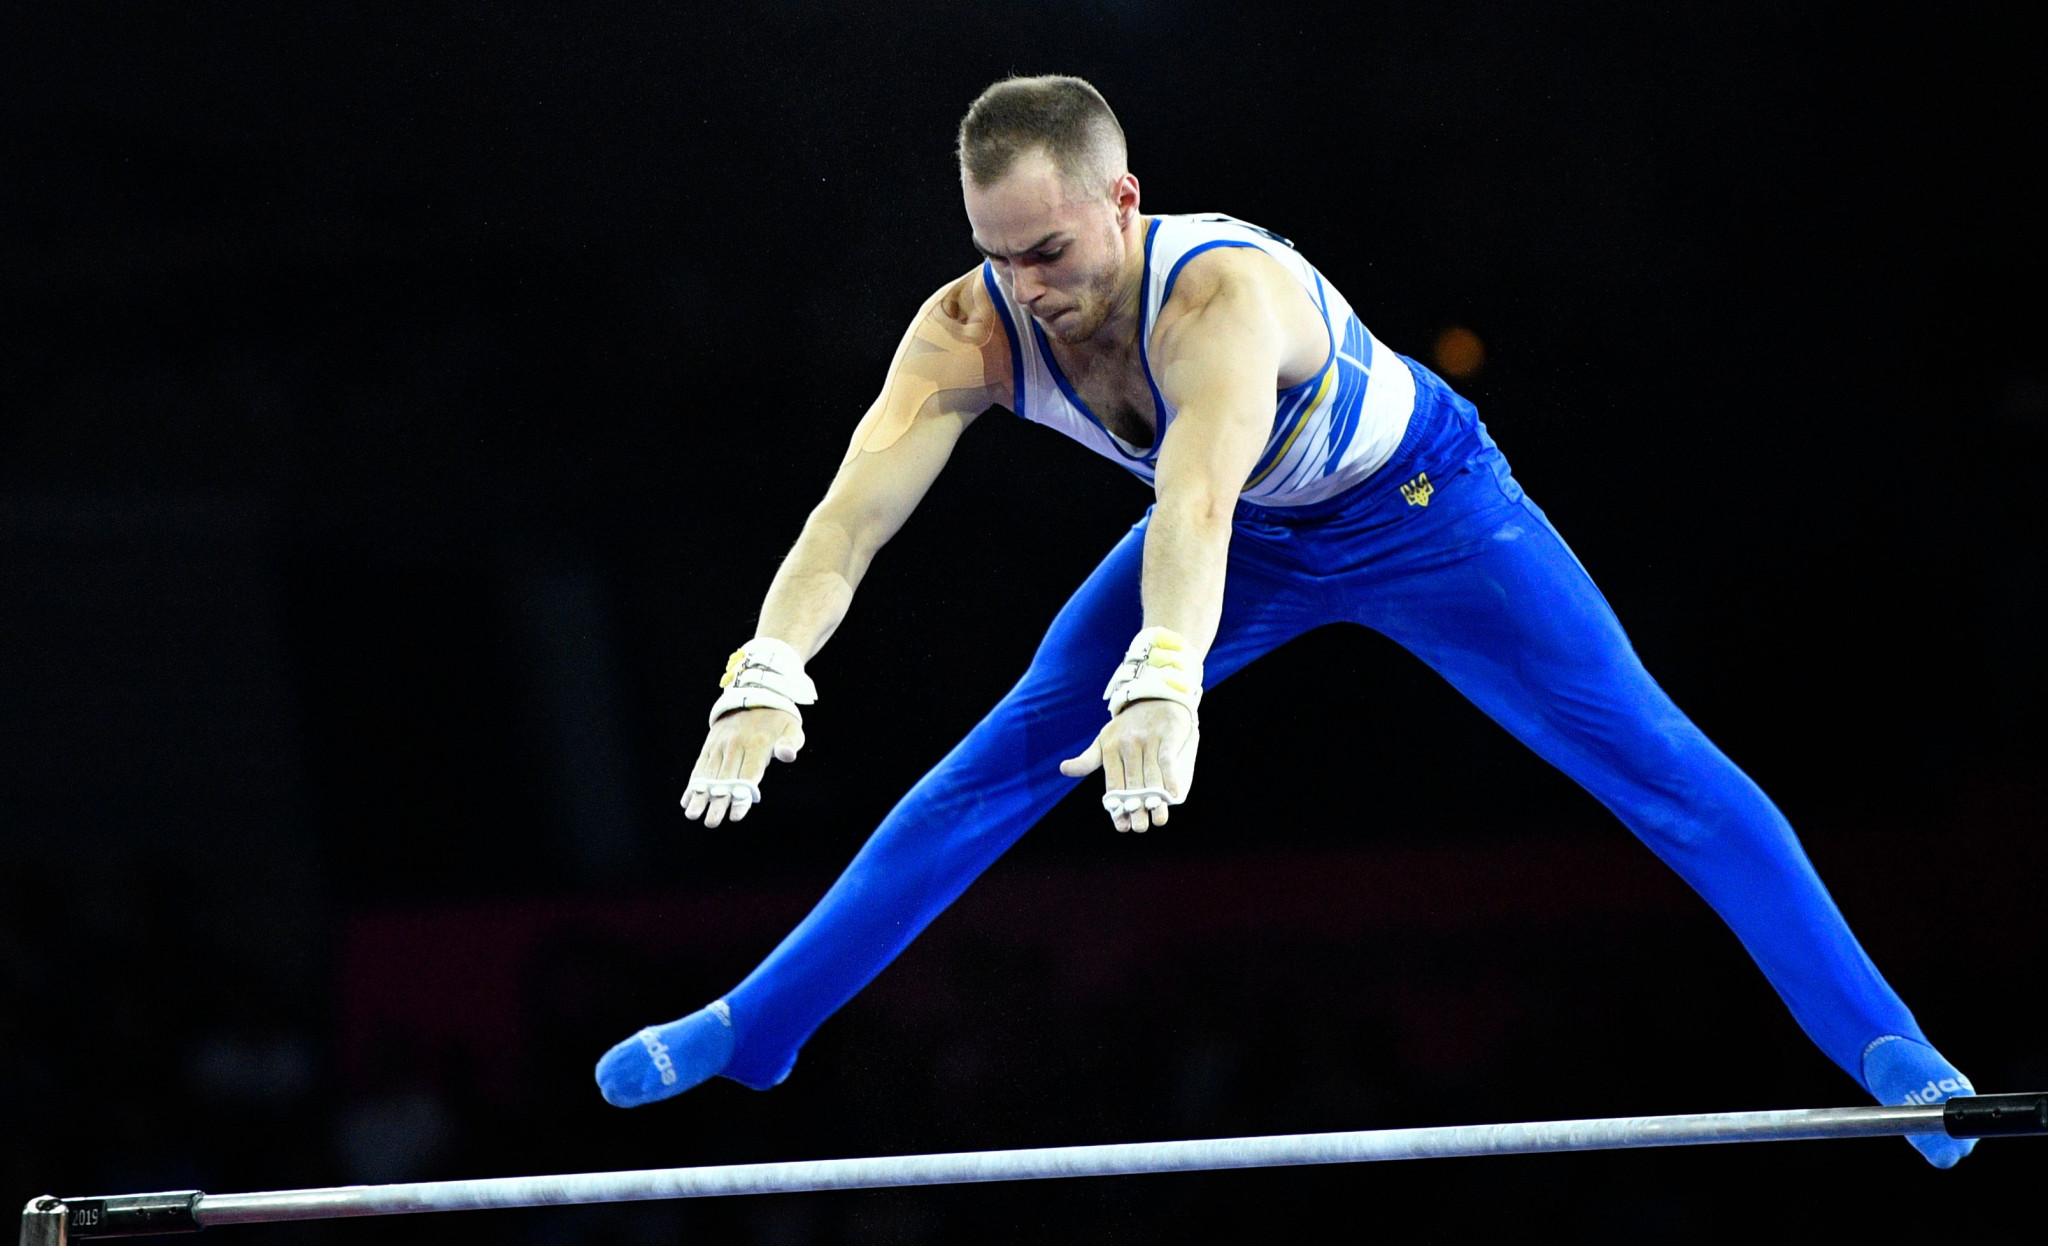 Olympic champion Verniaiev confirms Tokyo 2020 absence due to positive meldonium test